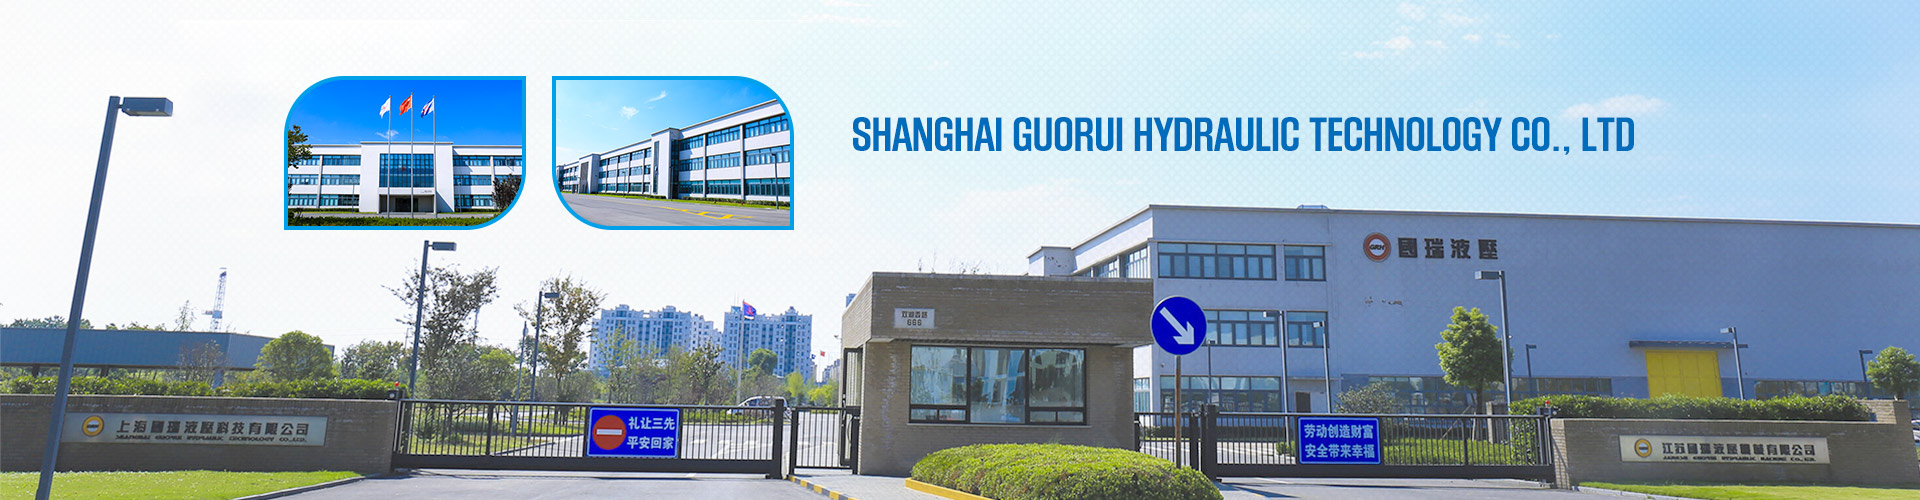 Shanghai Guorui hidraulički Technology Co., Ltd